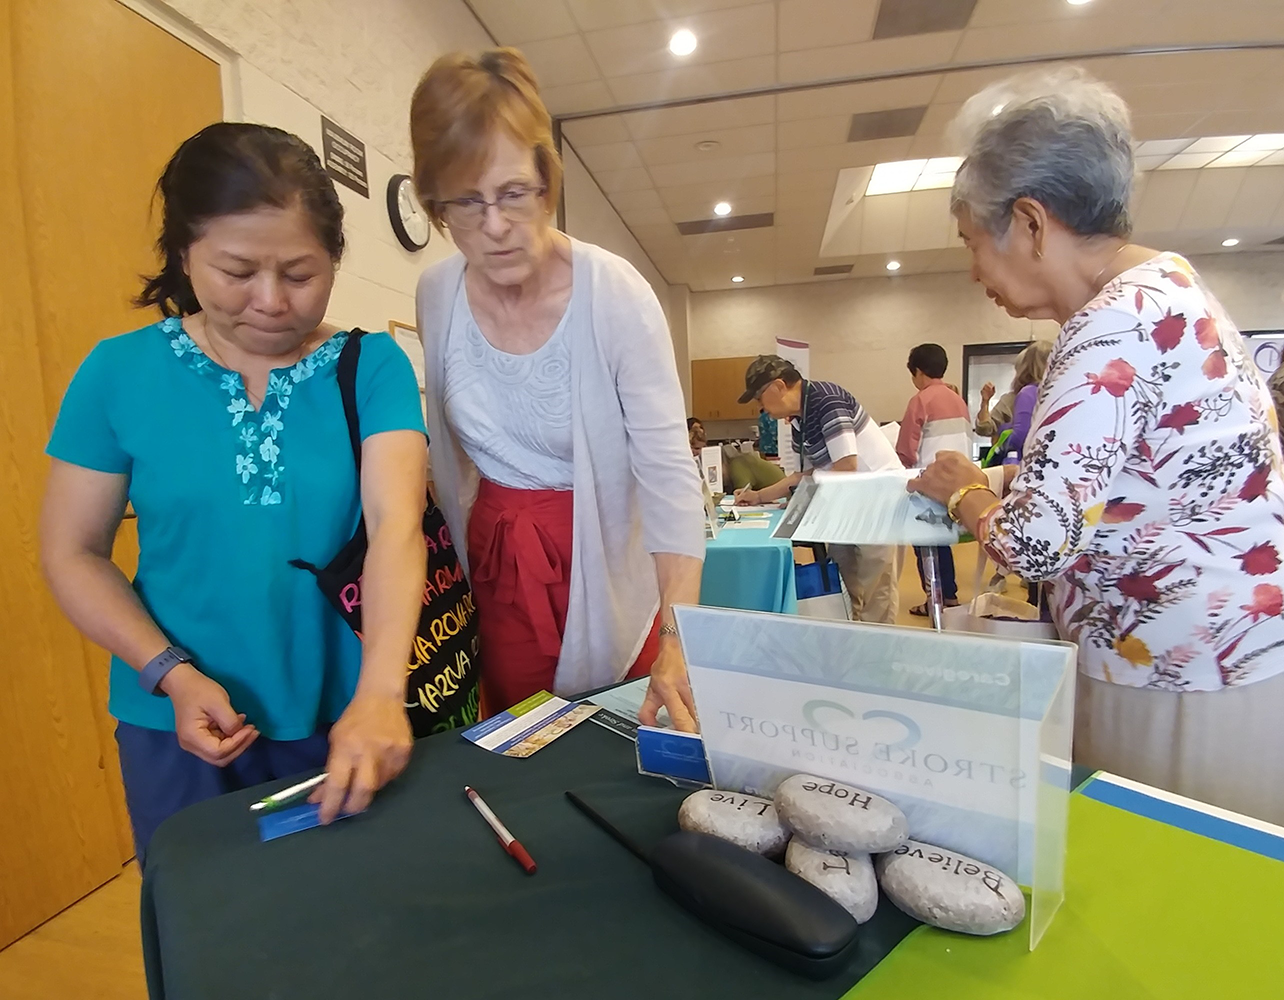 SSA member Diana assists at the Lakewood Senior Center 2019 fair